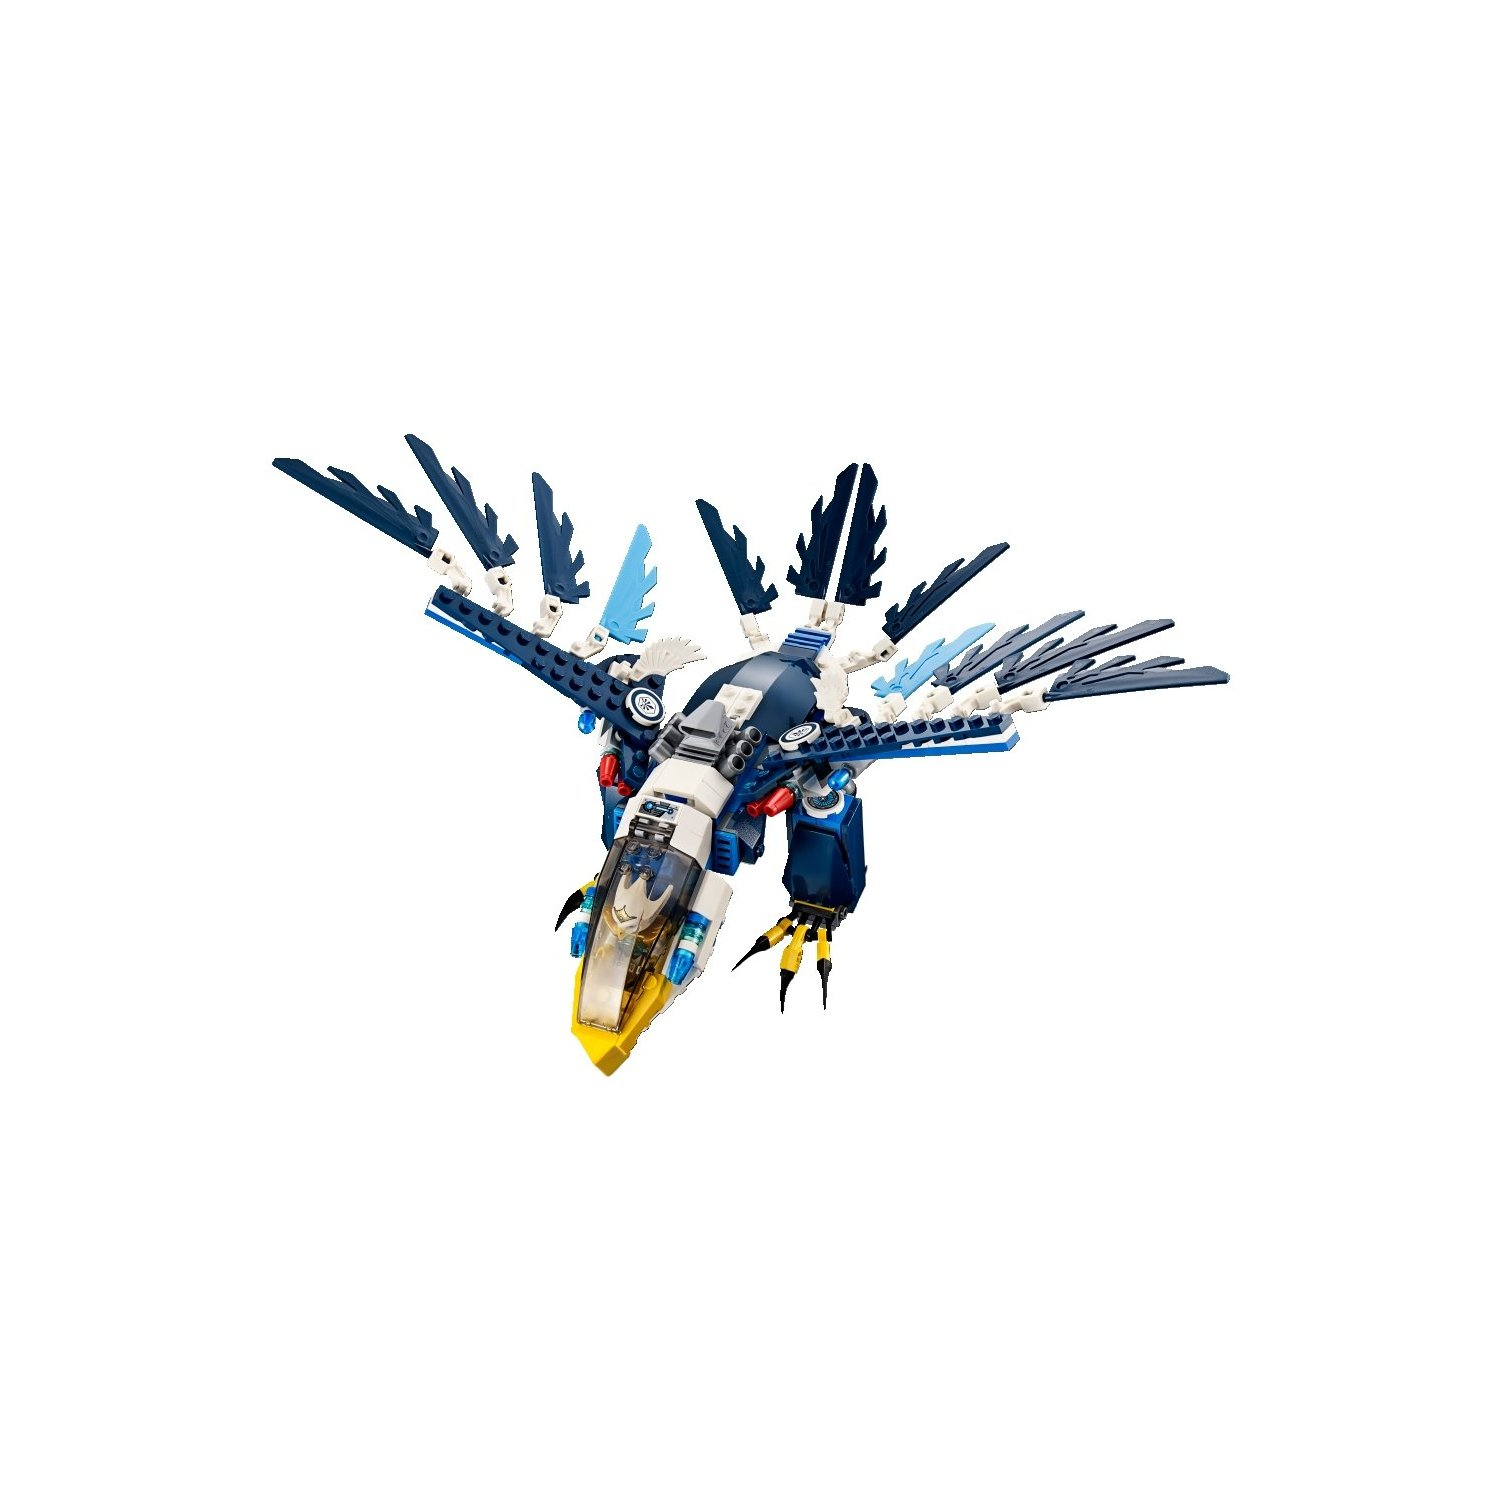 lego chima eagle coloring pages - photo#26